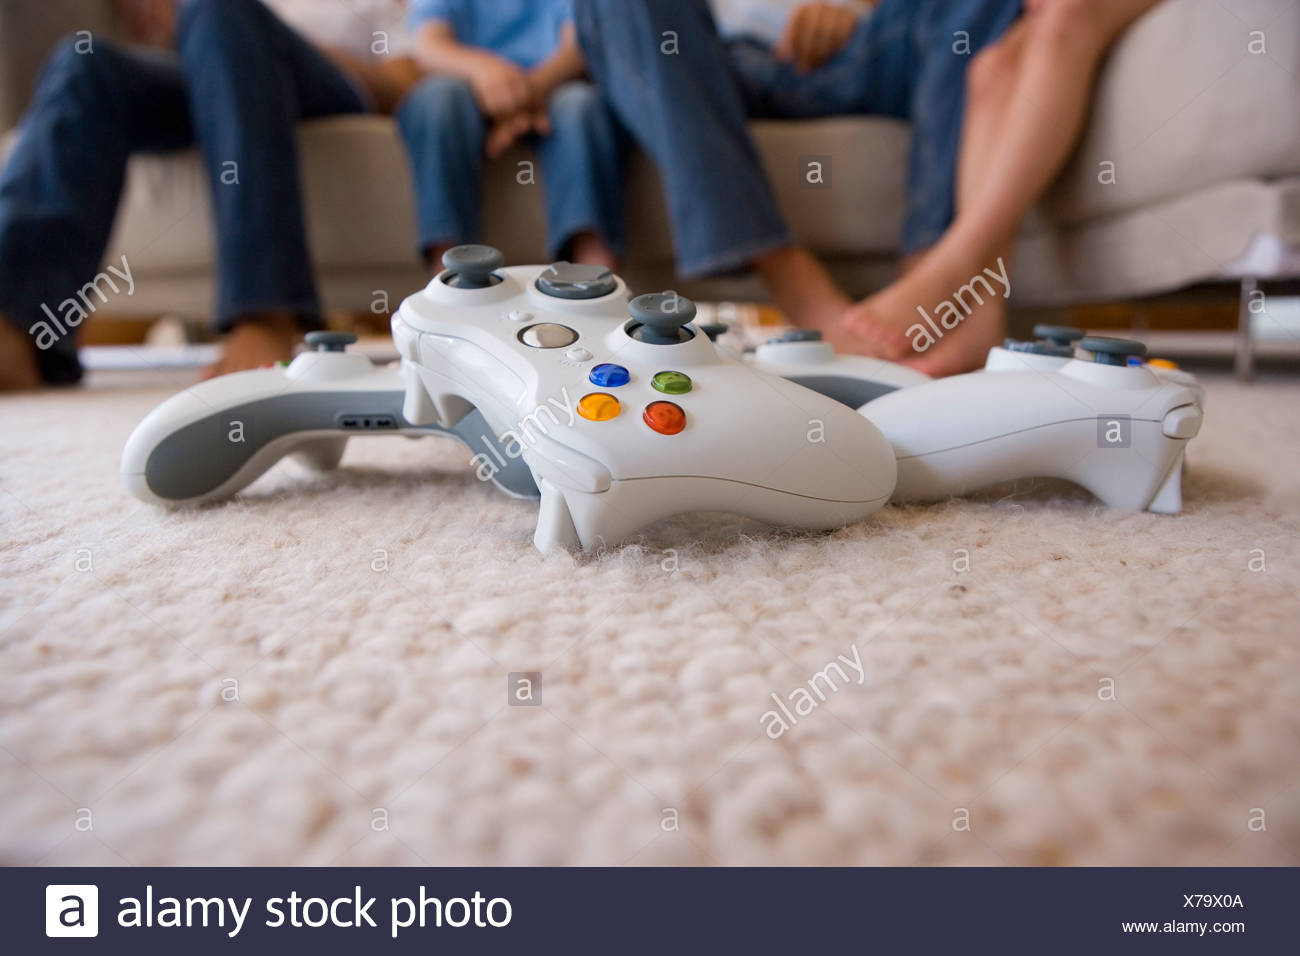 Close up of video game controller on living room floor - Stock Image